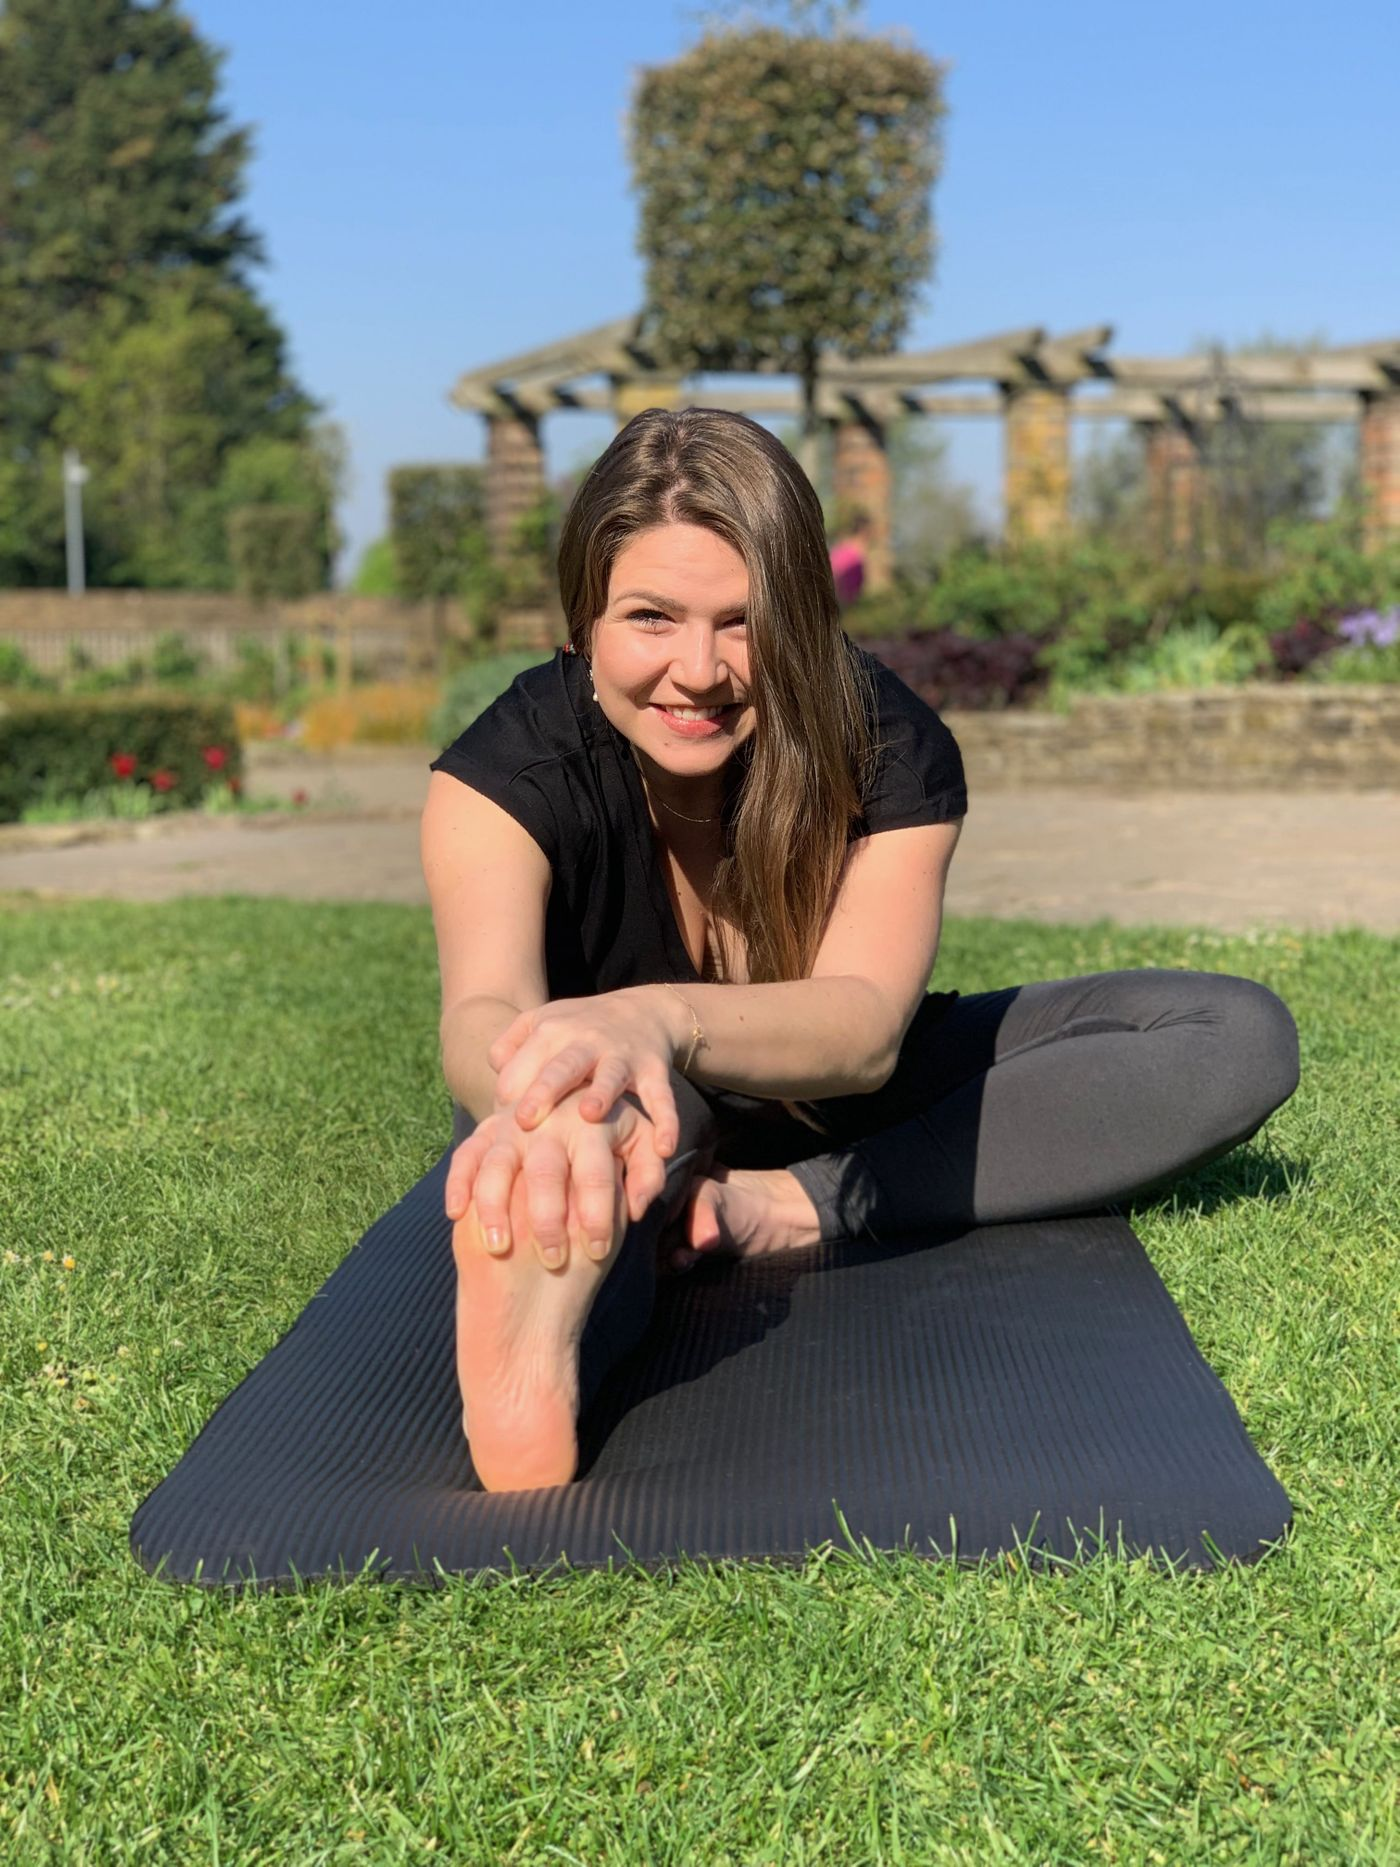 https://bua.fit/class/tZ2jH20lvklm  Hatha Yoga Class at Gladstone Park from Monday, 6:30 pm. North West London.  Everyone is welcome!